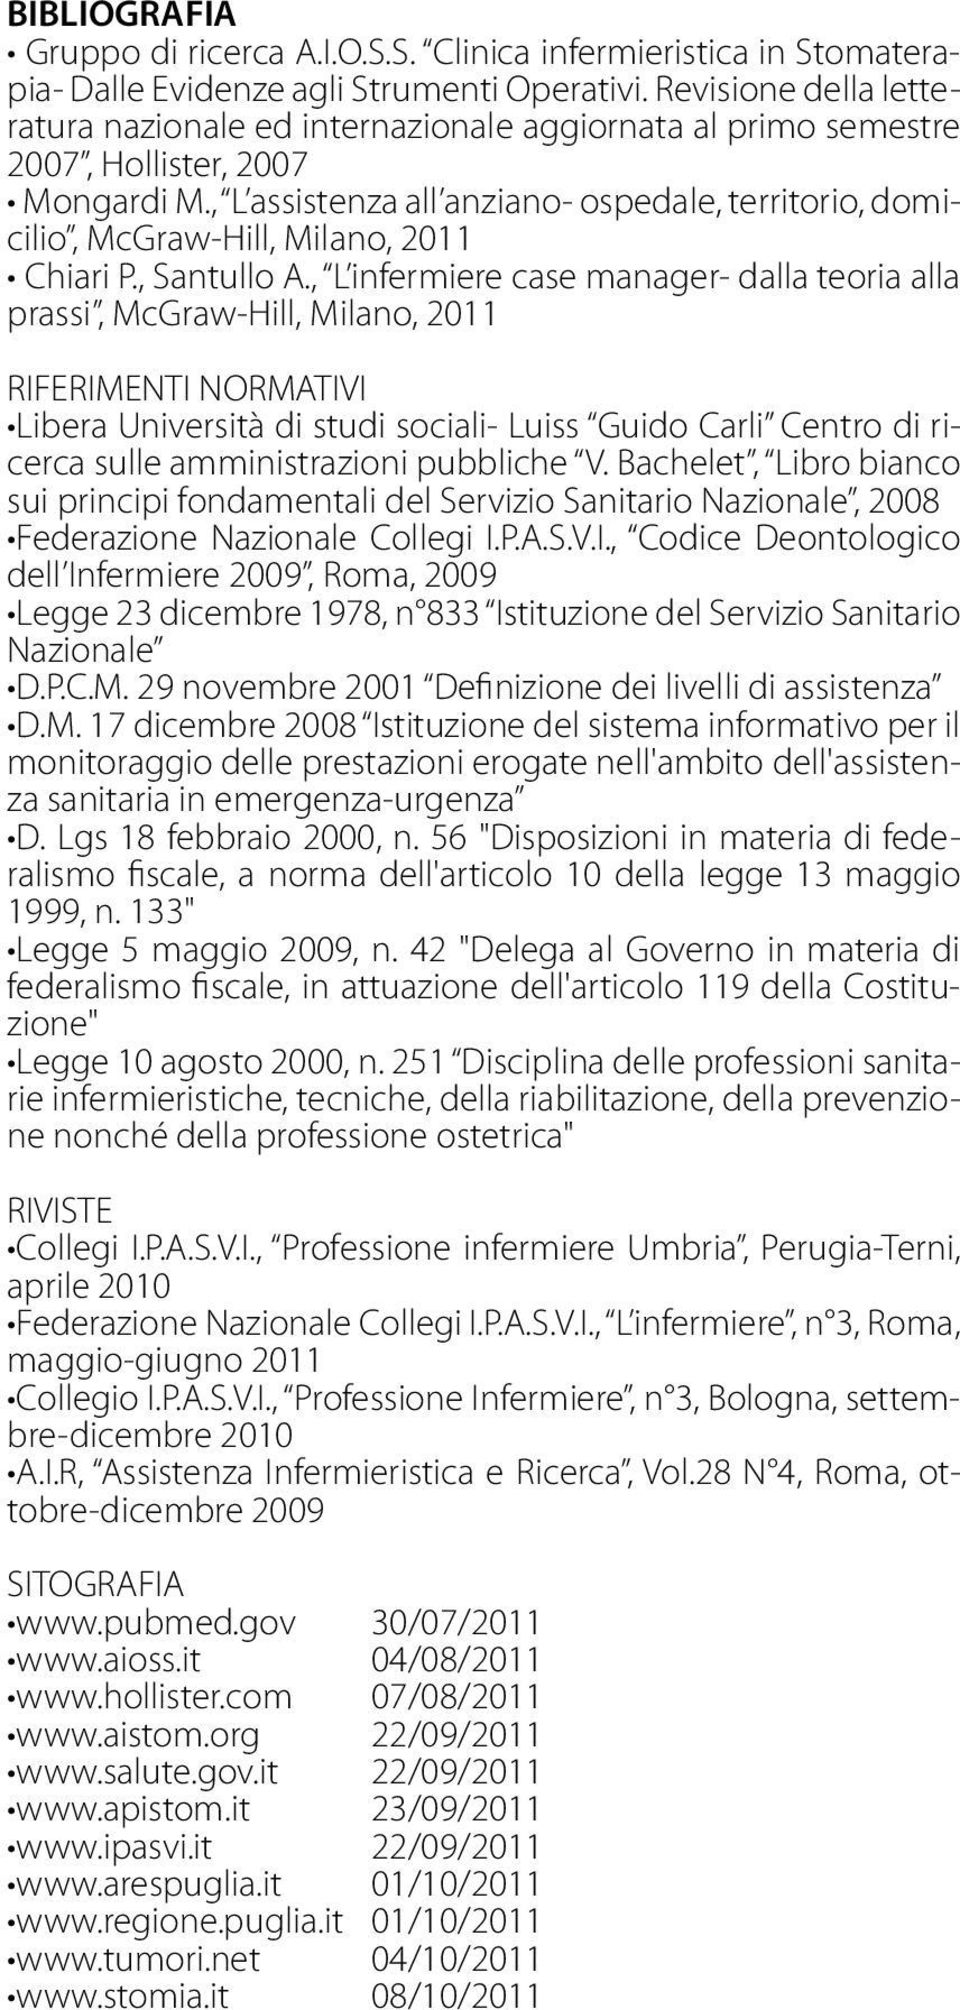 , L assistenza all anziano- ospedale, territorio, domicilio, McGraw-Hill, Milano, 2011 Chiari P., Santullo A.